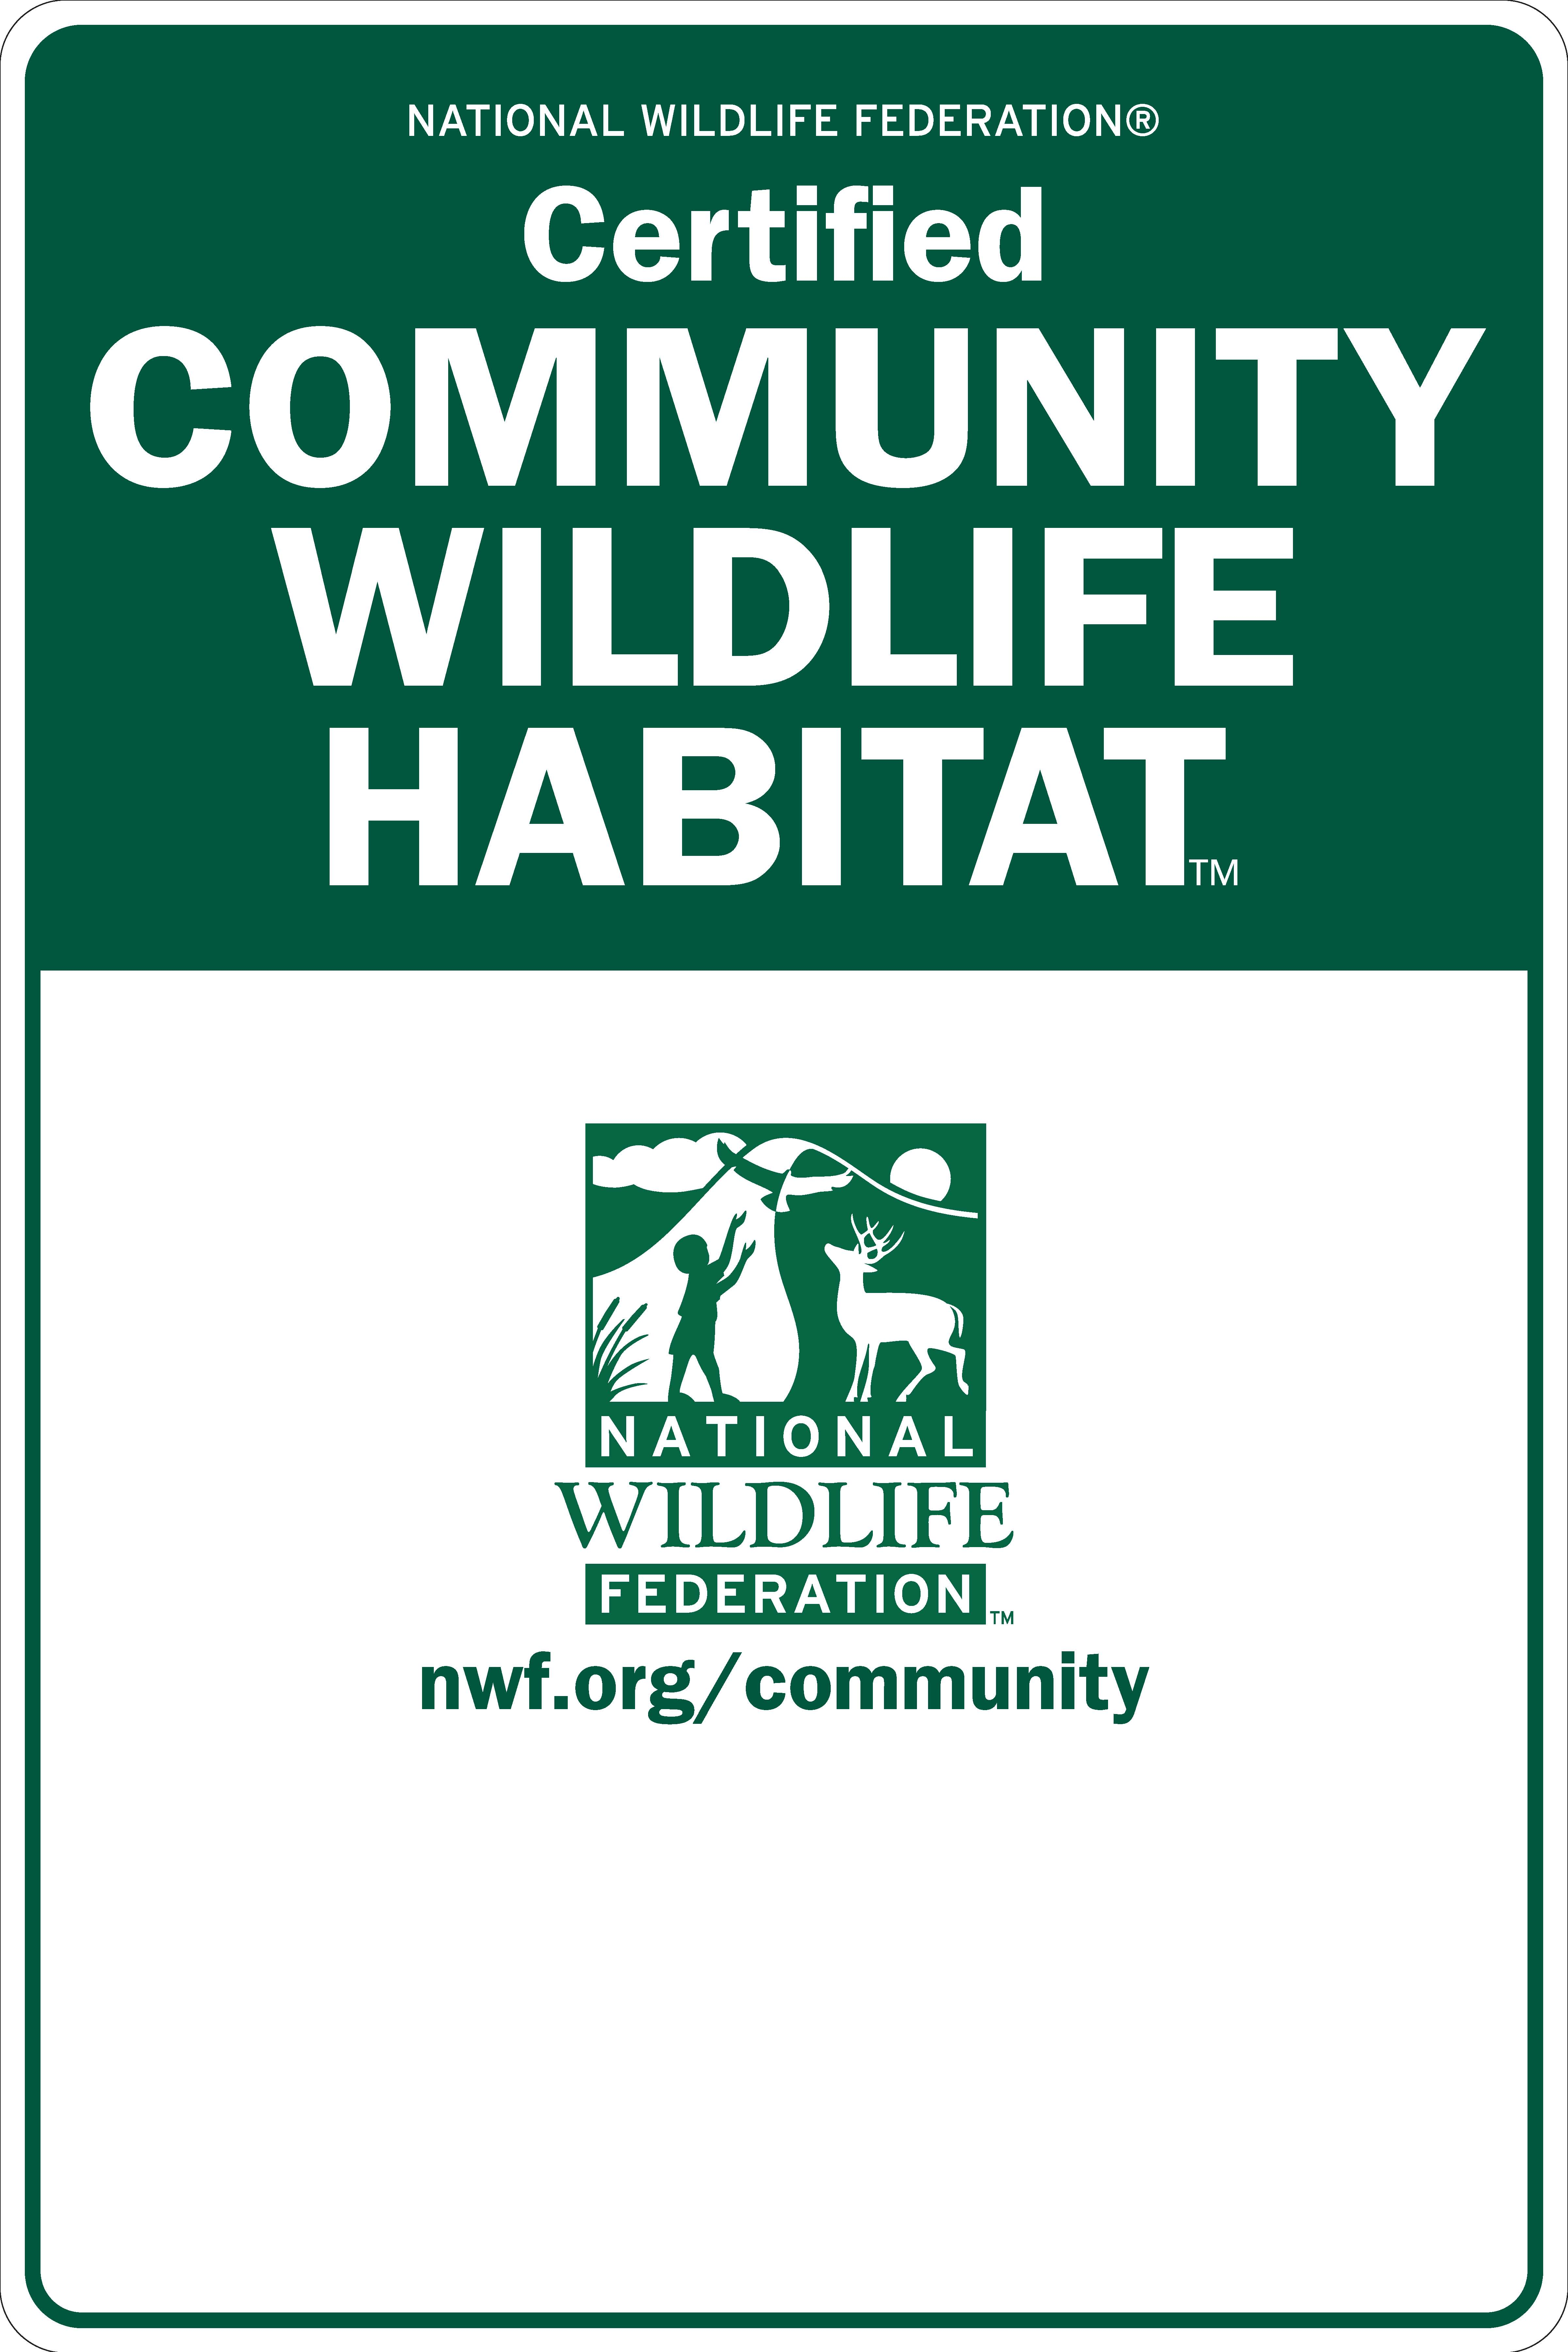 Community Wildlife Habitat Sign